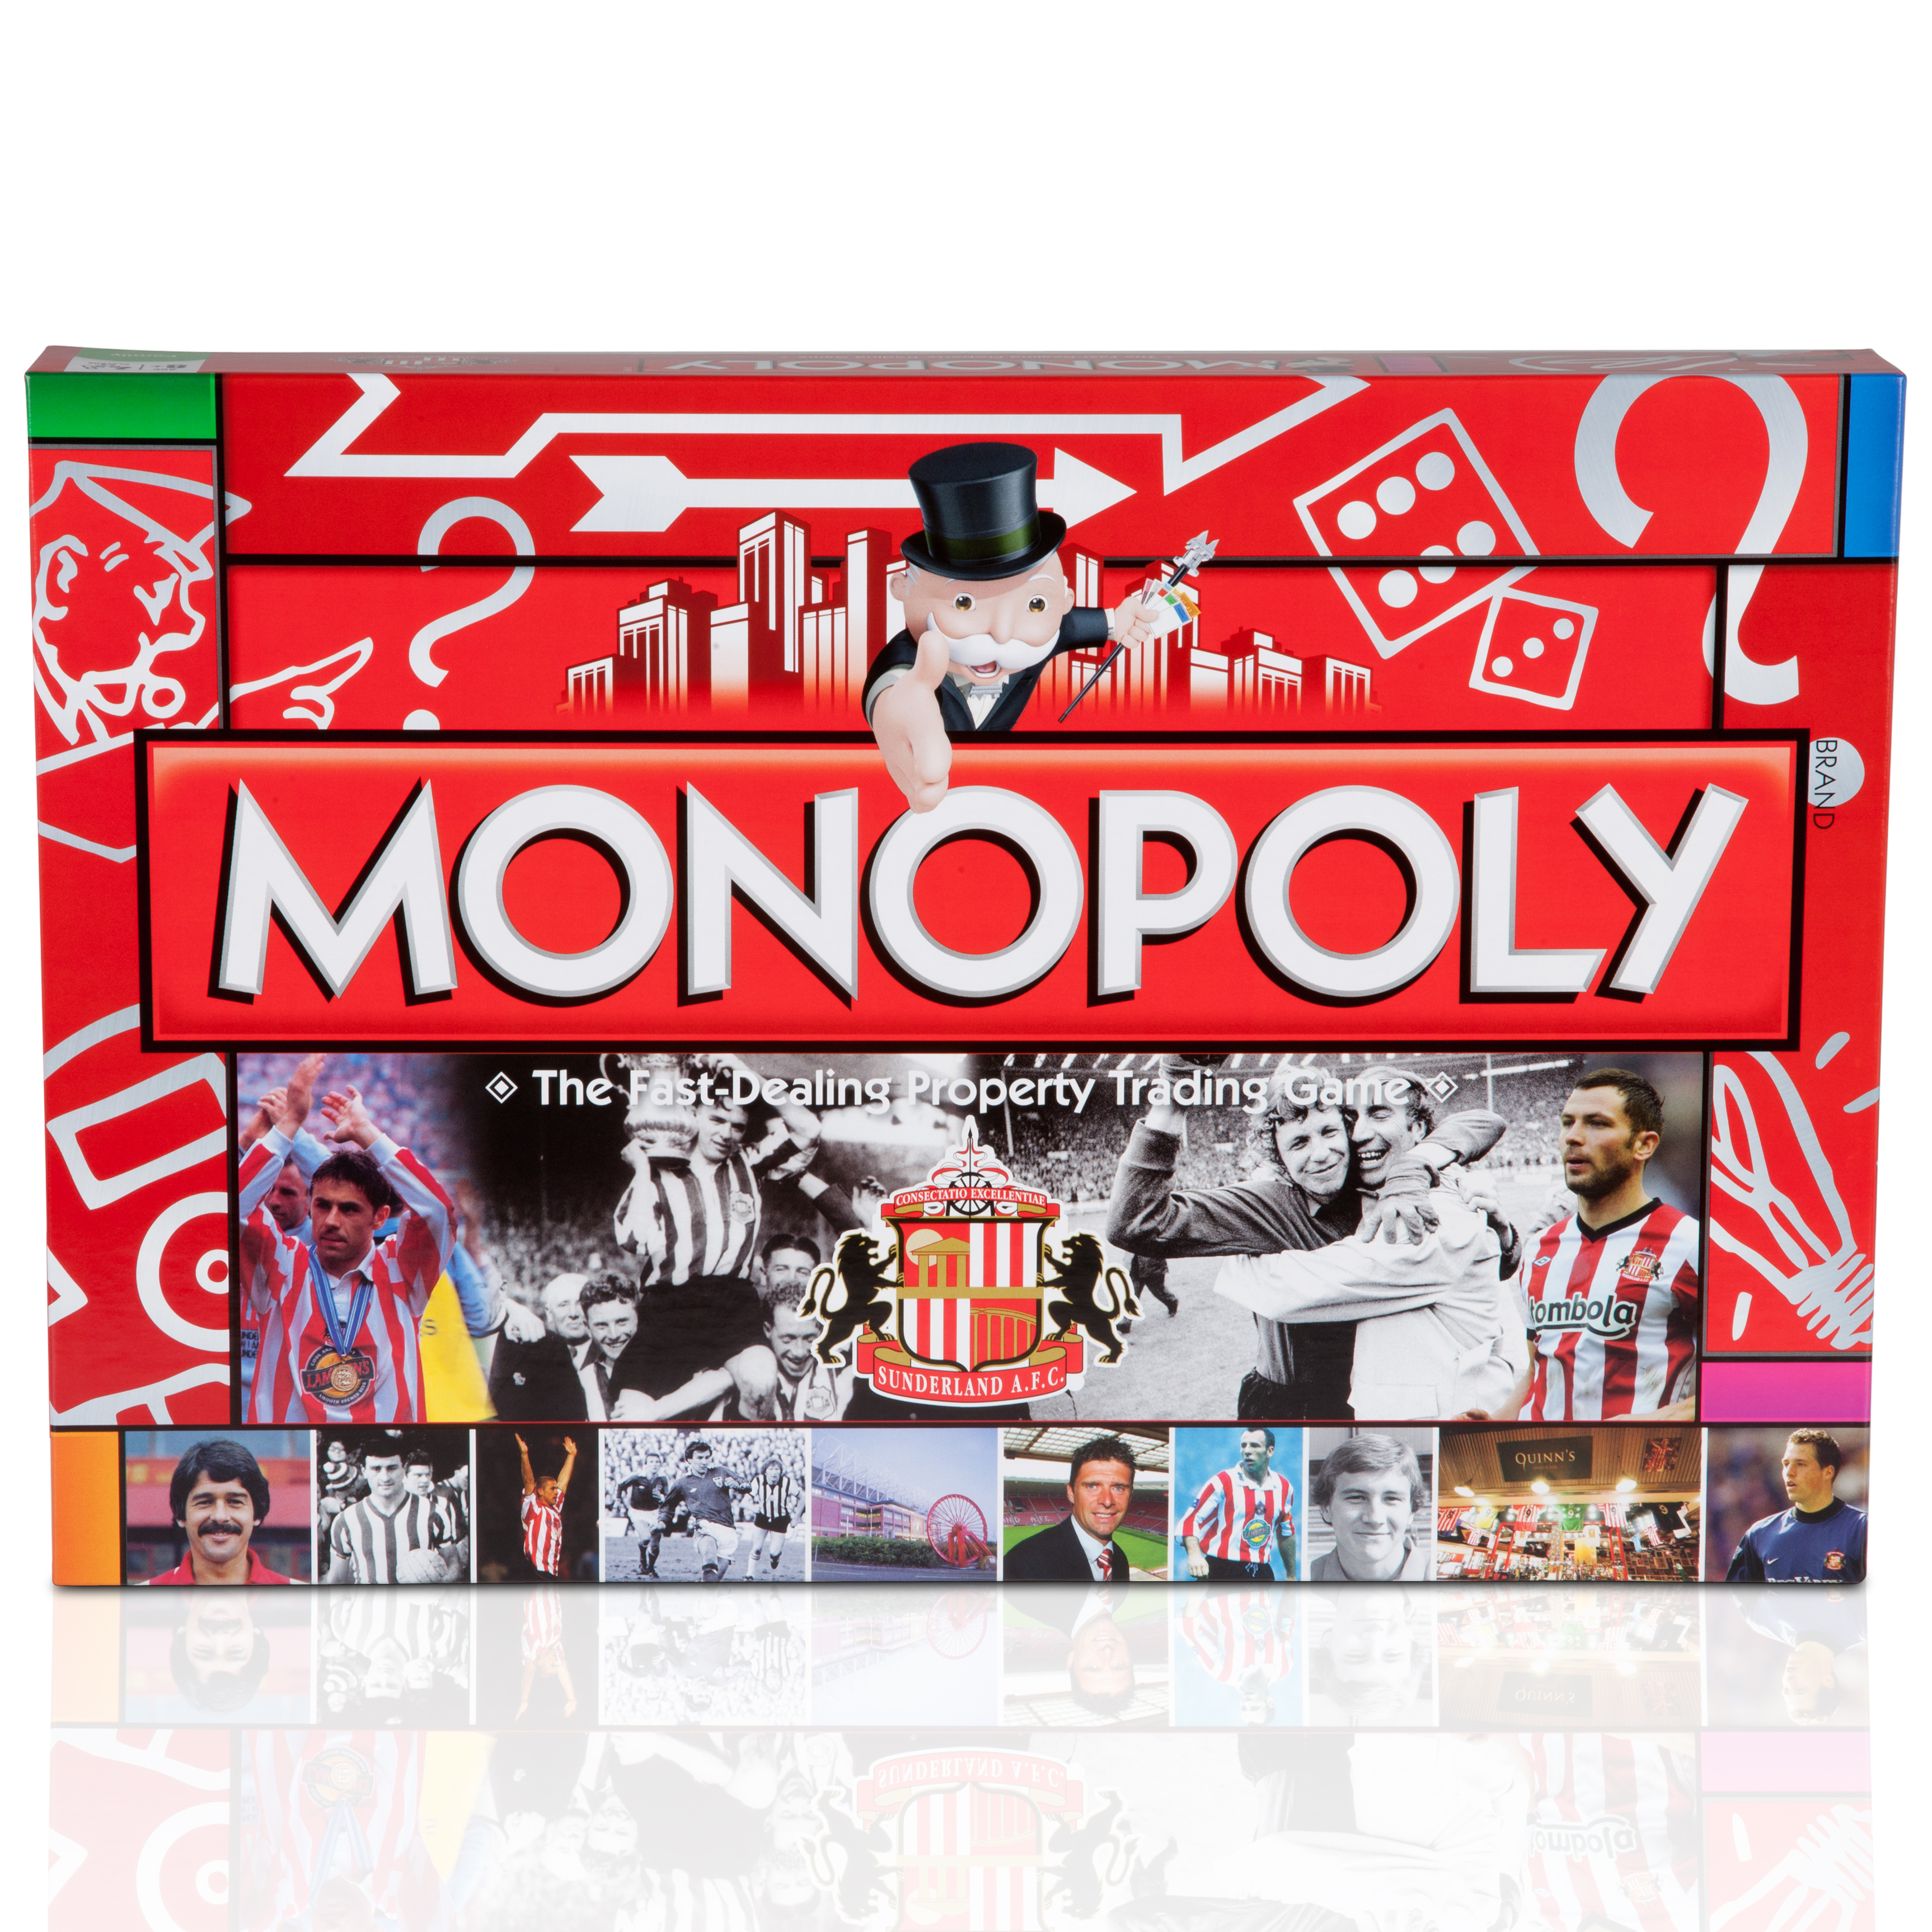 Sunderland Monopoly